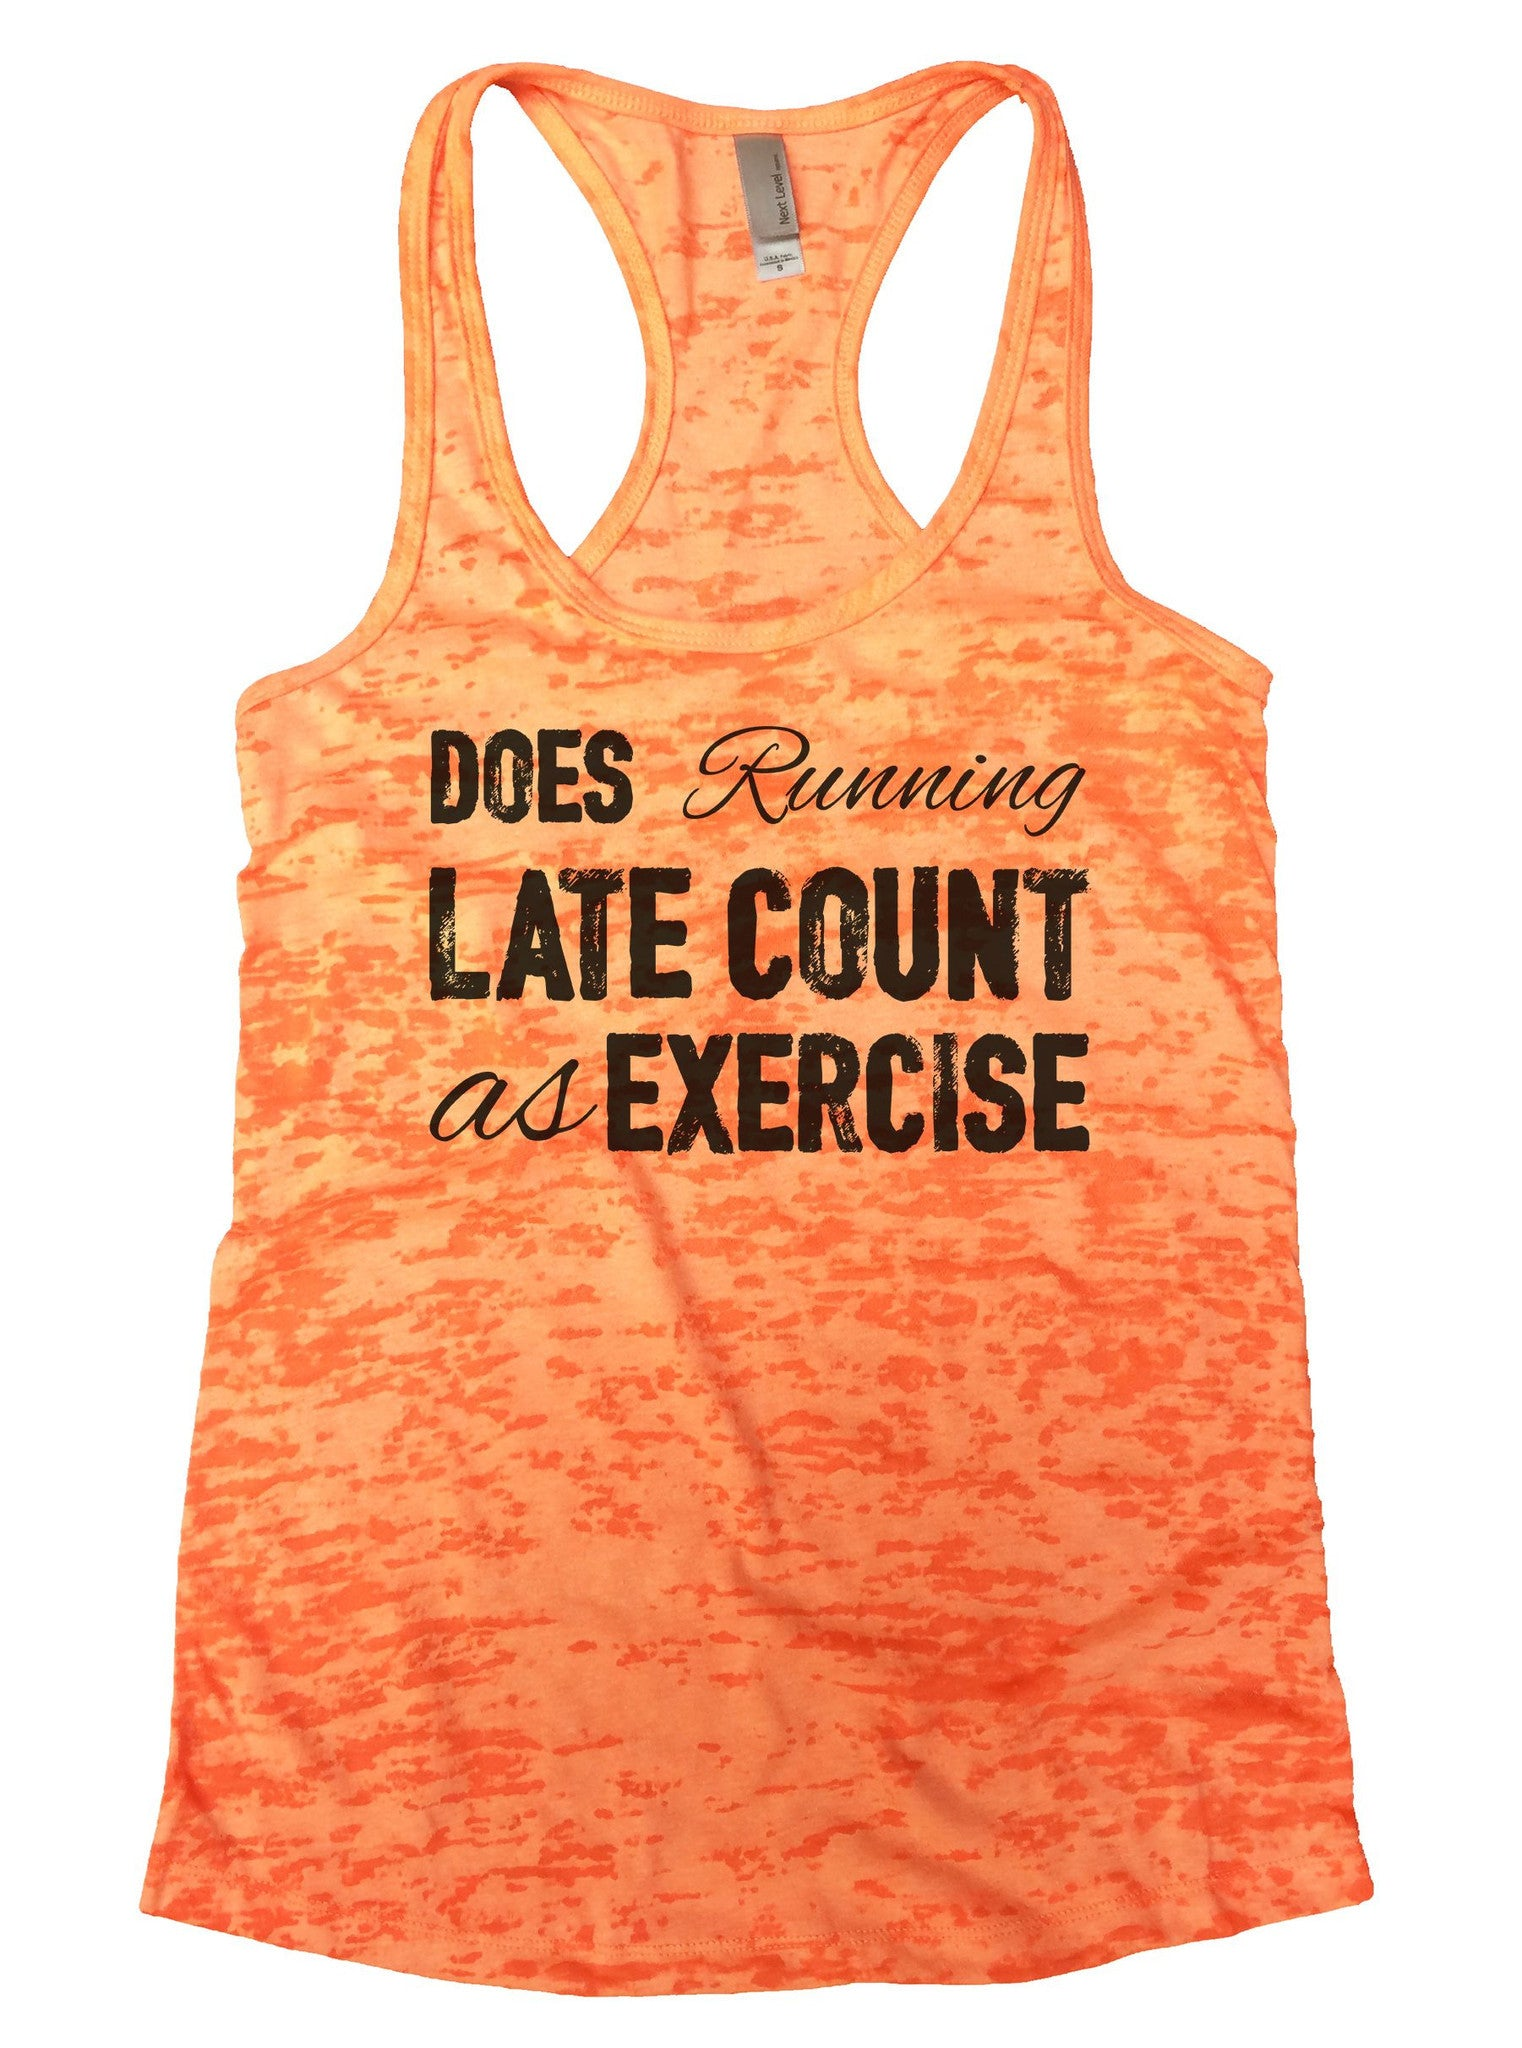 Does Running Late Count As Exercise Burnout Tank Top By BurnoutTankTops.com - 805 - Funny Shirts Tank Tops Burnouts and Triblends  - 3